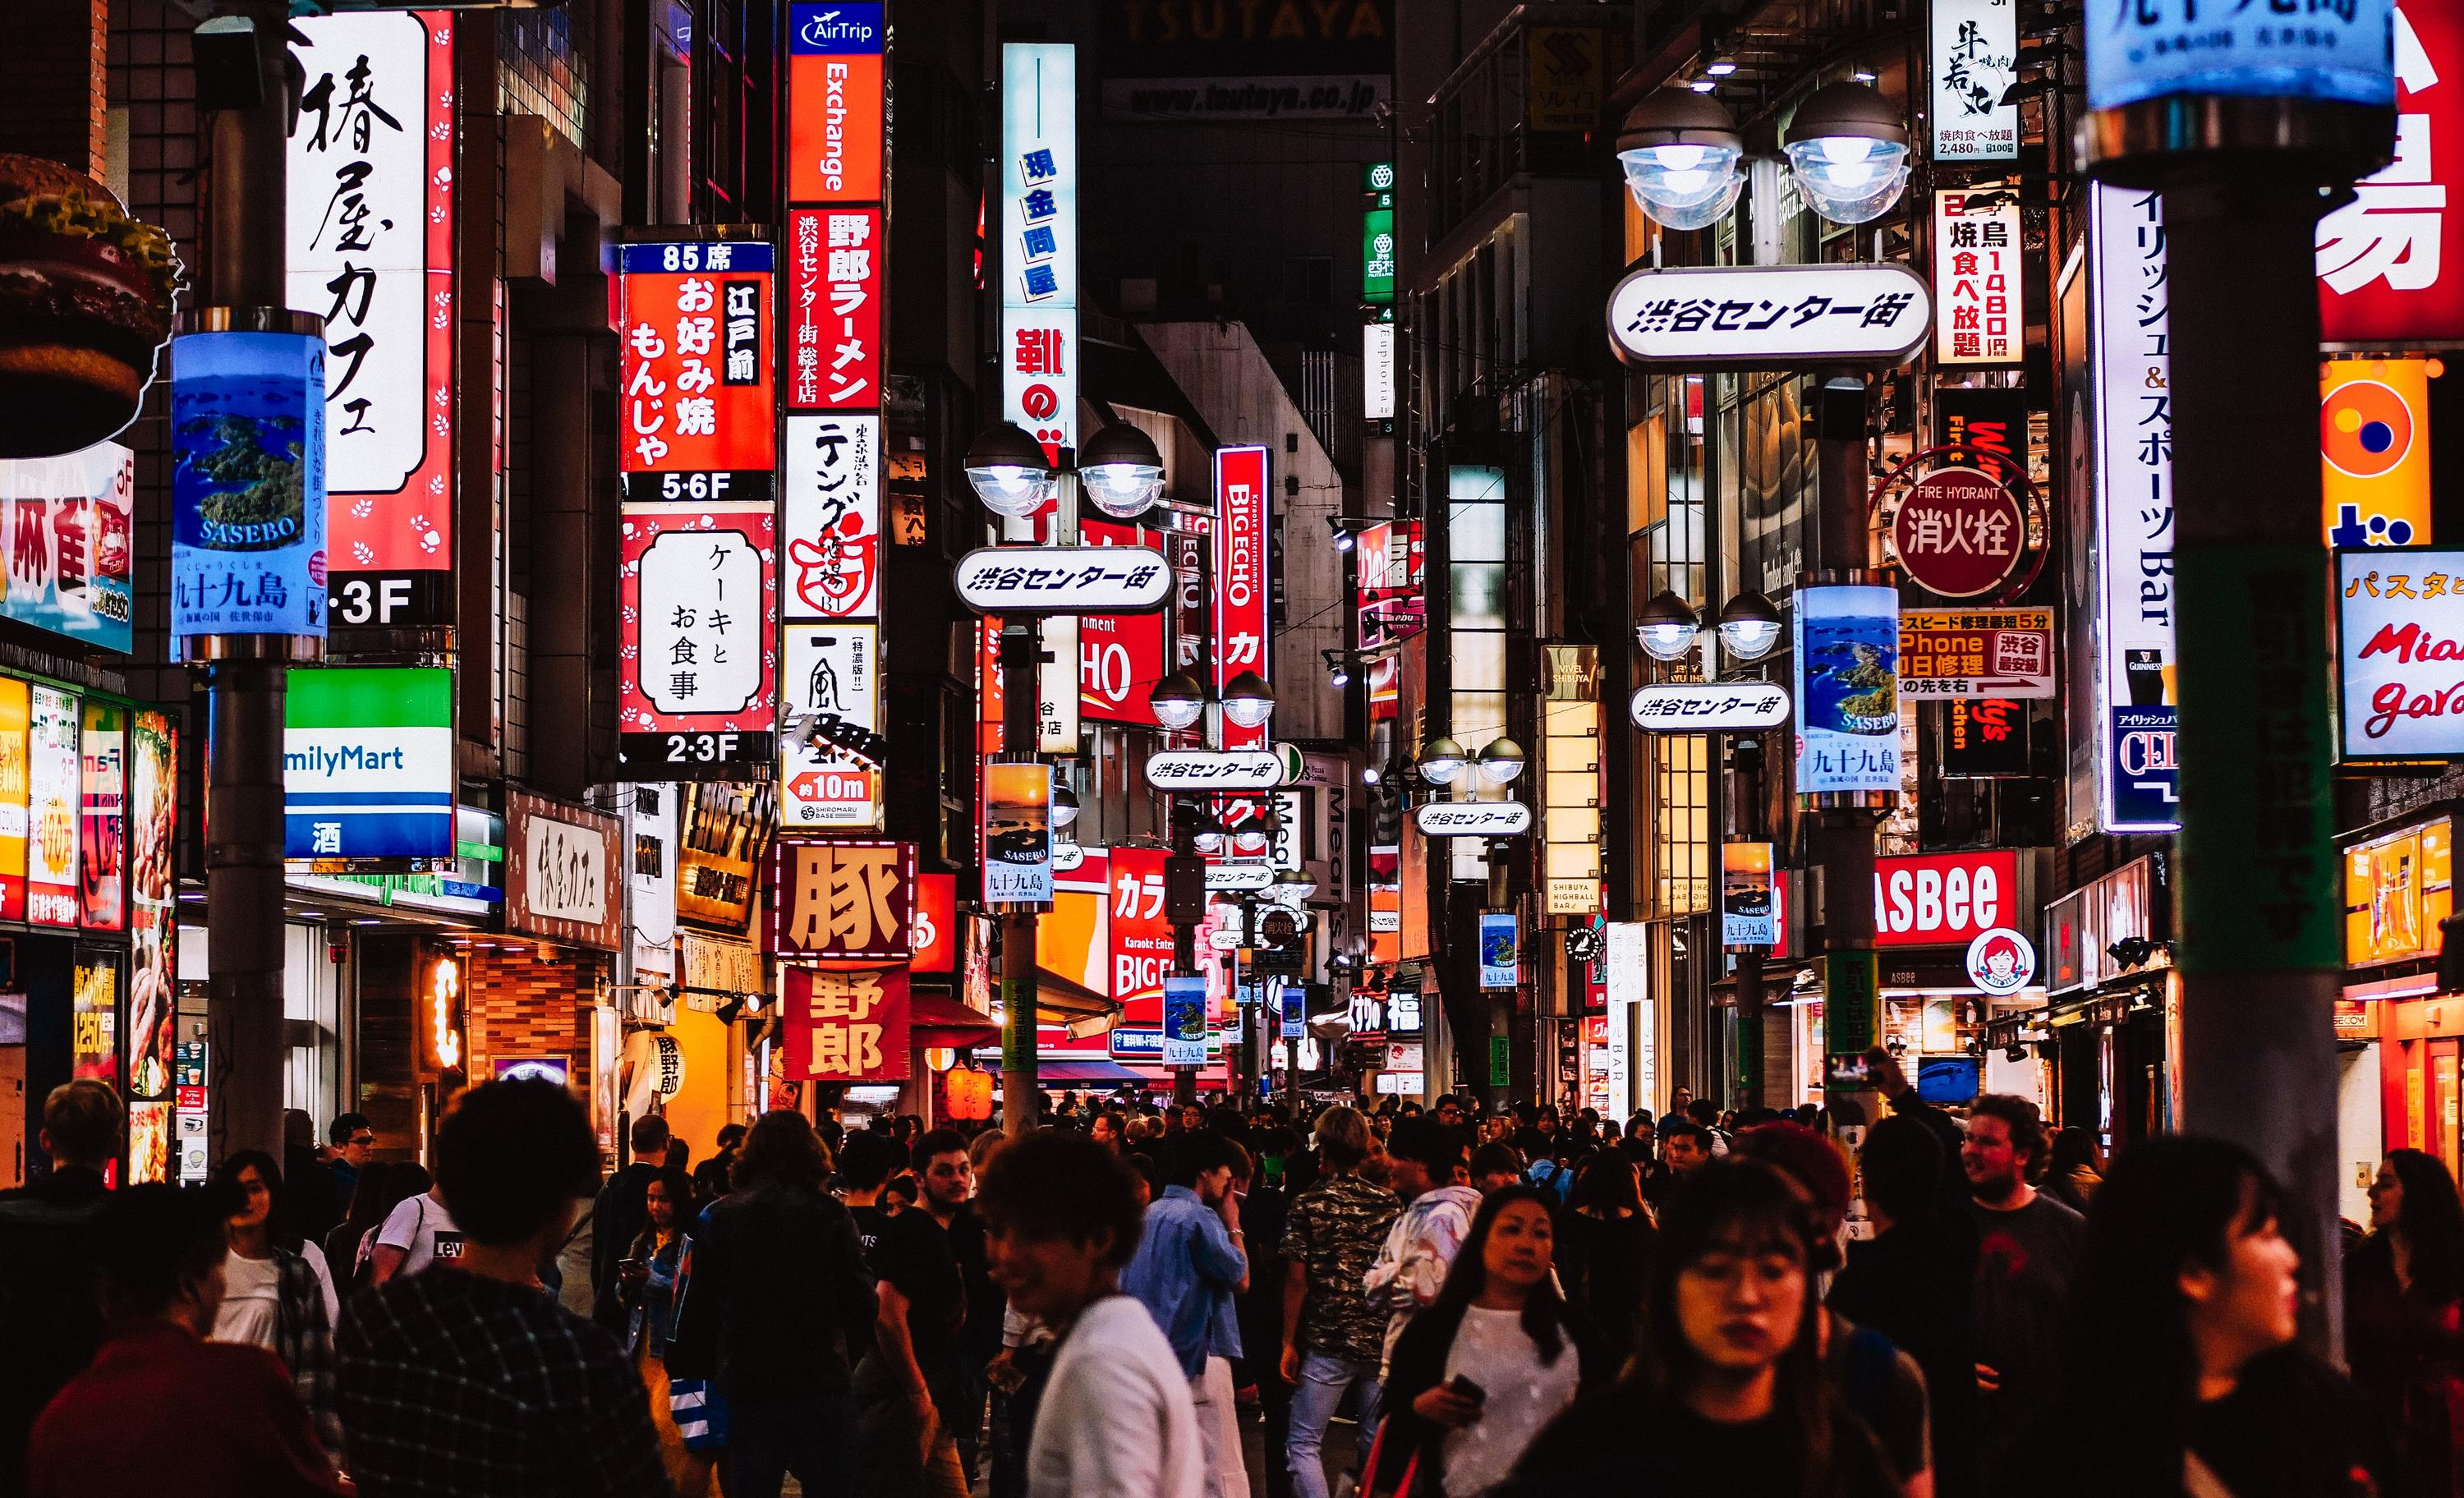 Tokyo may declare its own state of emergency if coronavirus cases keep rising